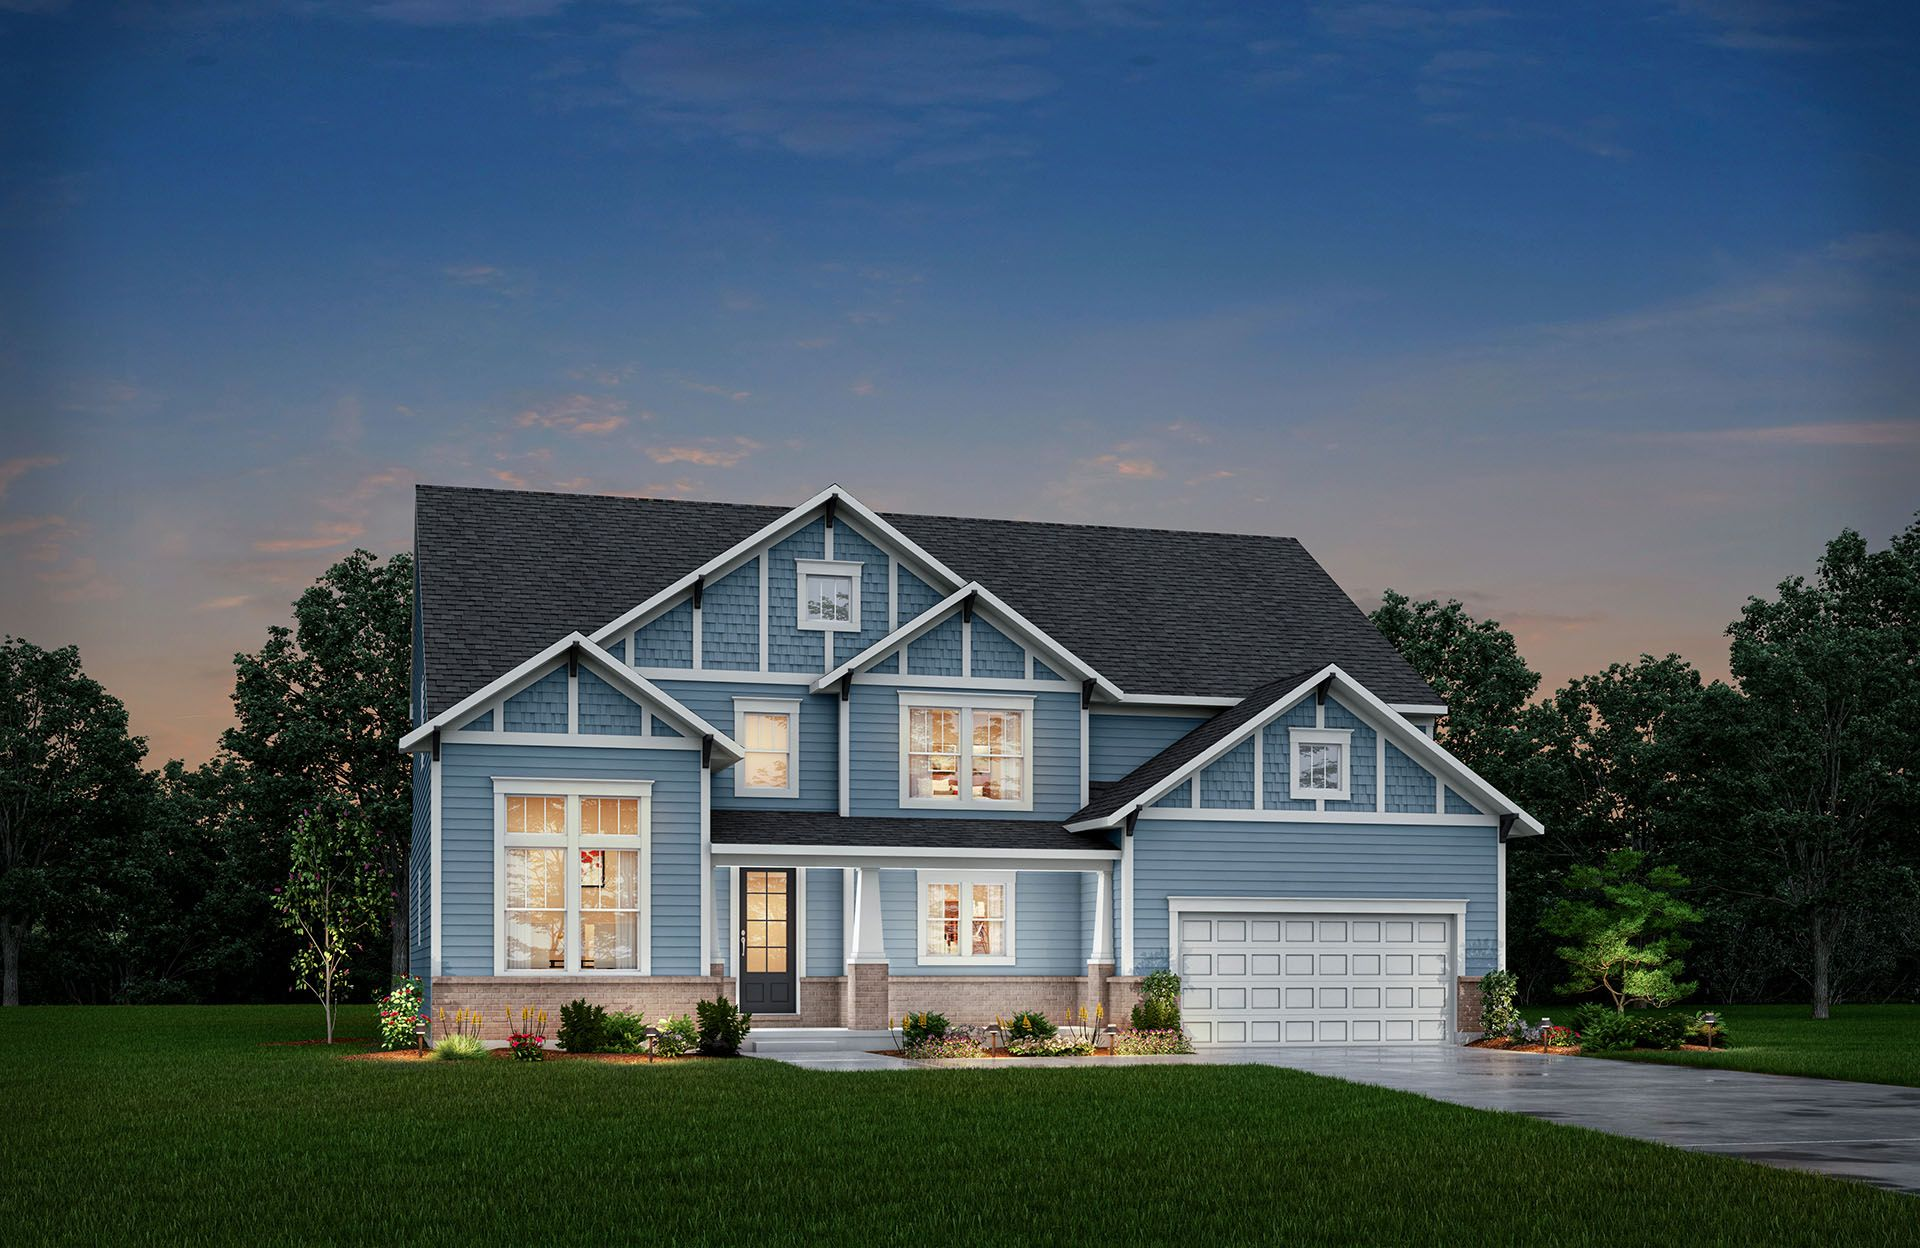 Single Family for Active at Oak Ridge At Tipton Lakes - Winfield 4950 Carr Hill Road Columbus, Indiana 47201 United States